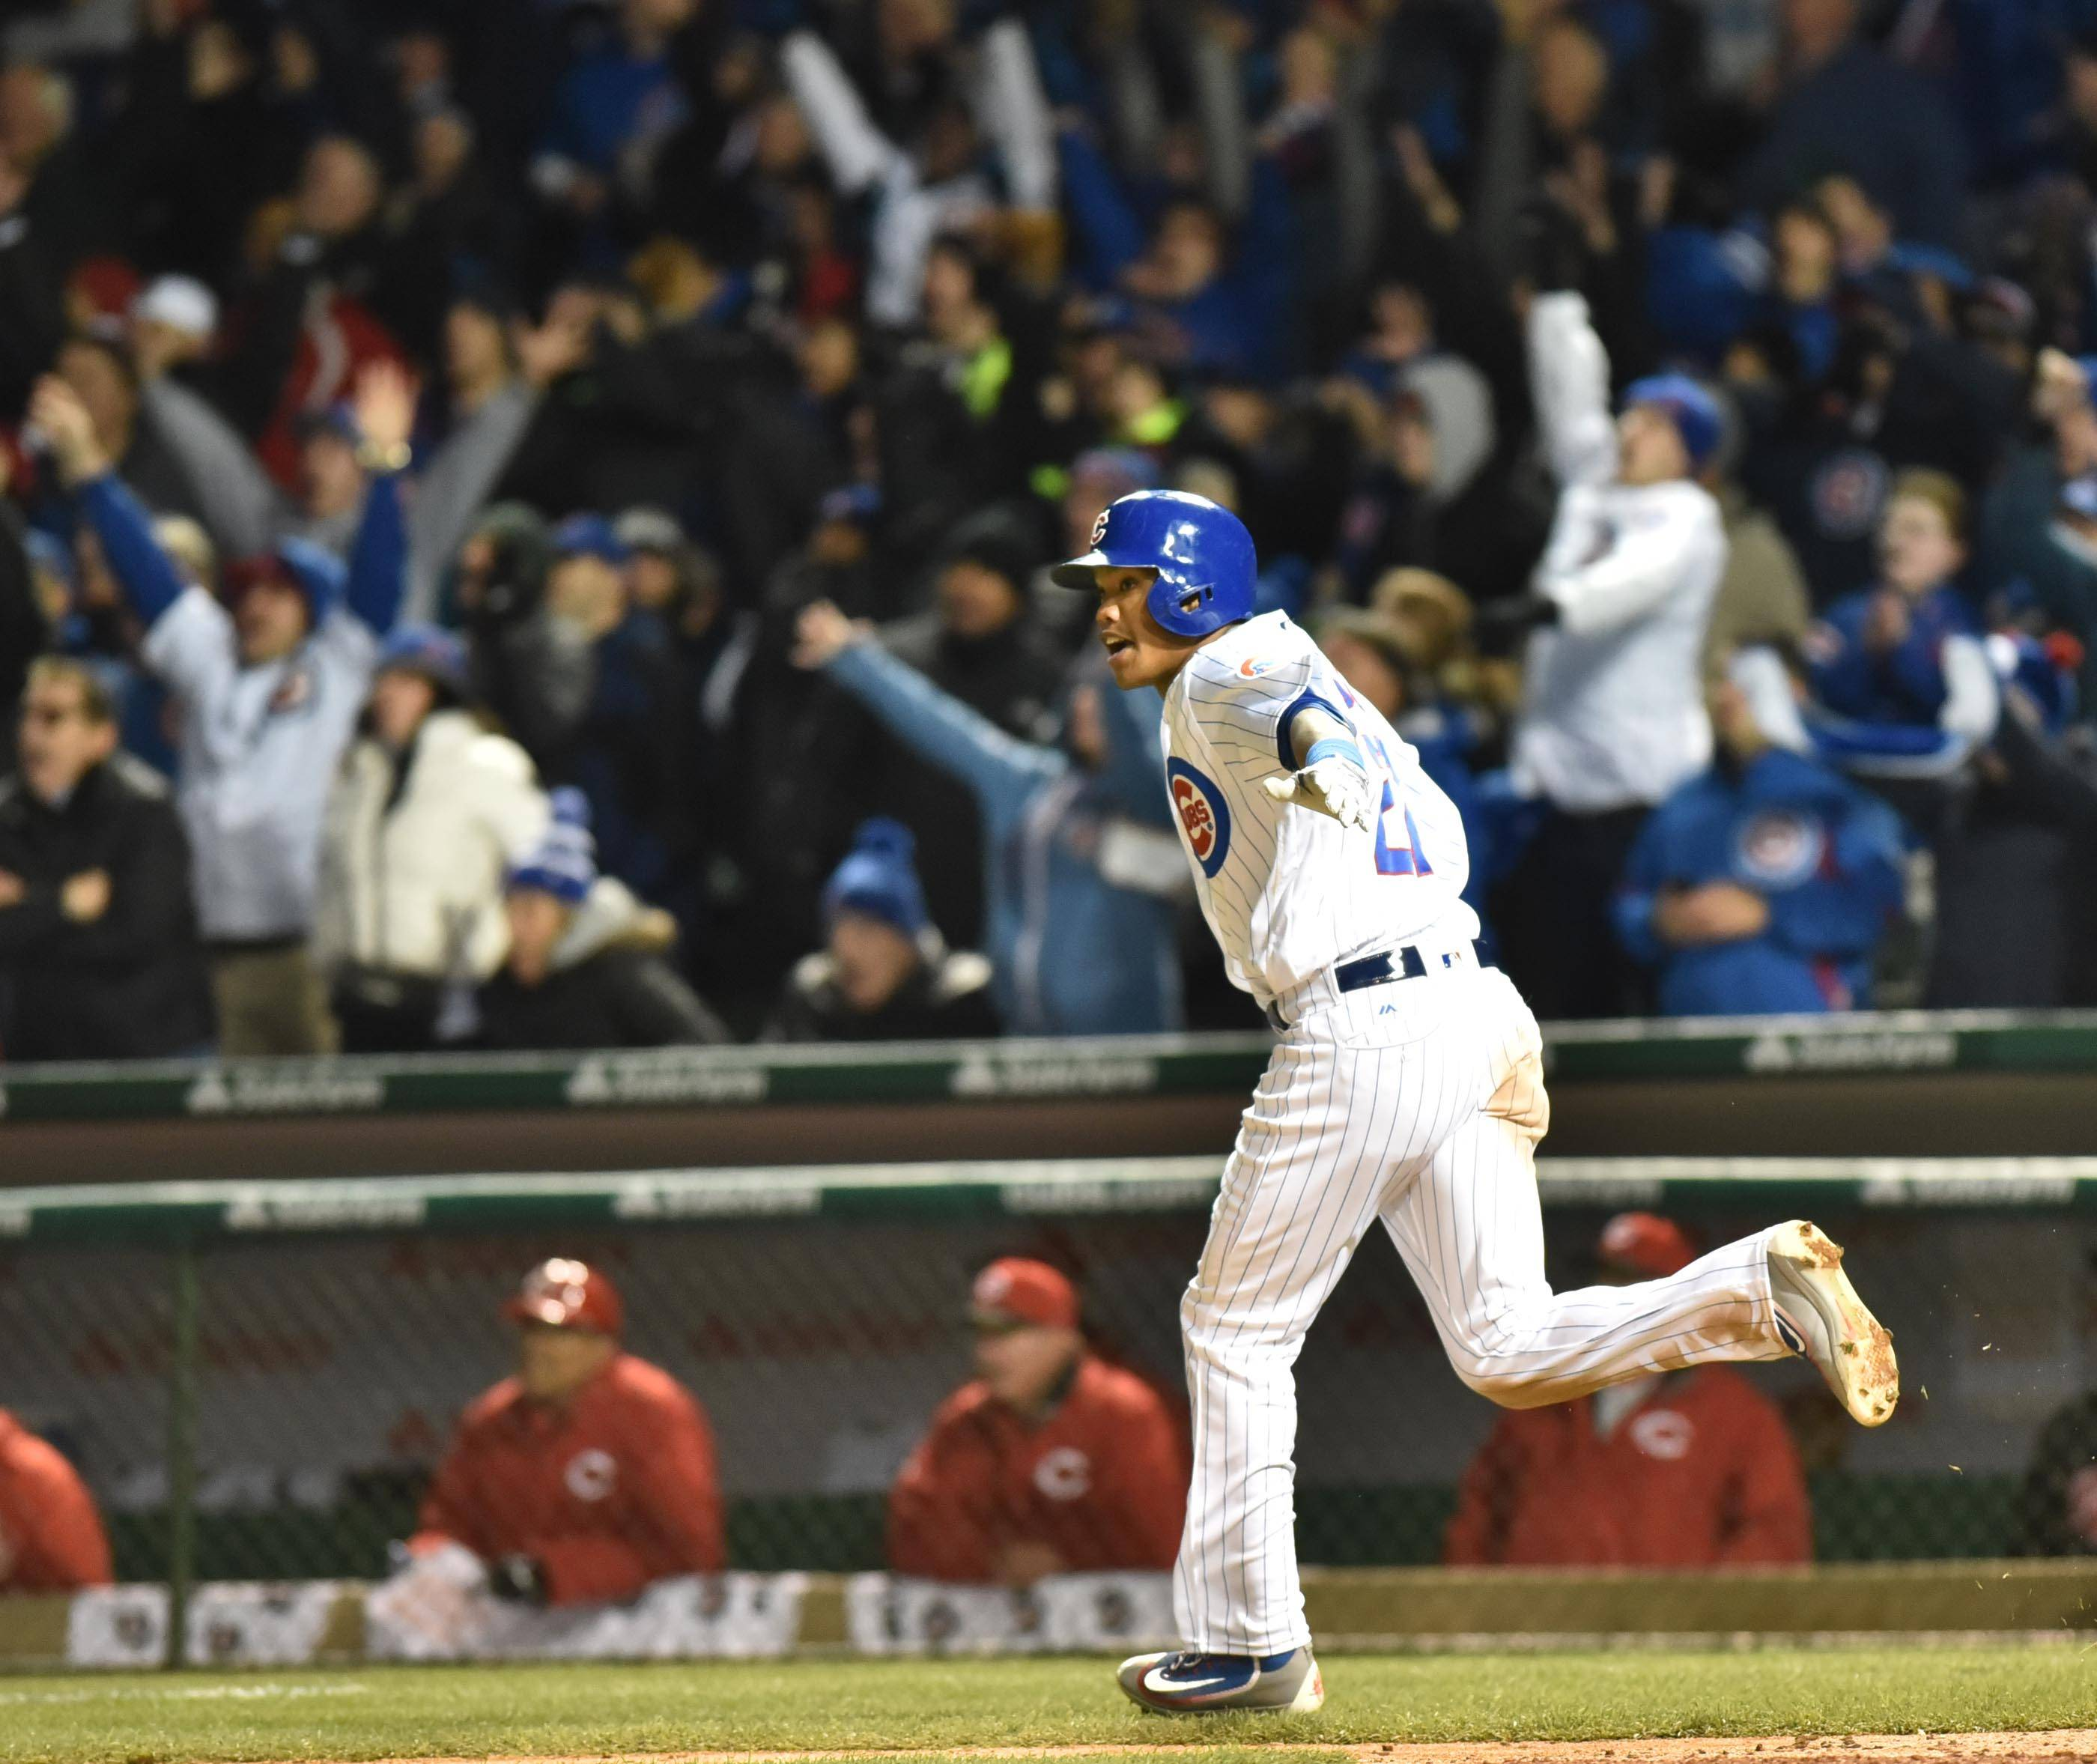 'Absolute insanity' as Cubs win Wrigley opener